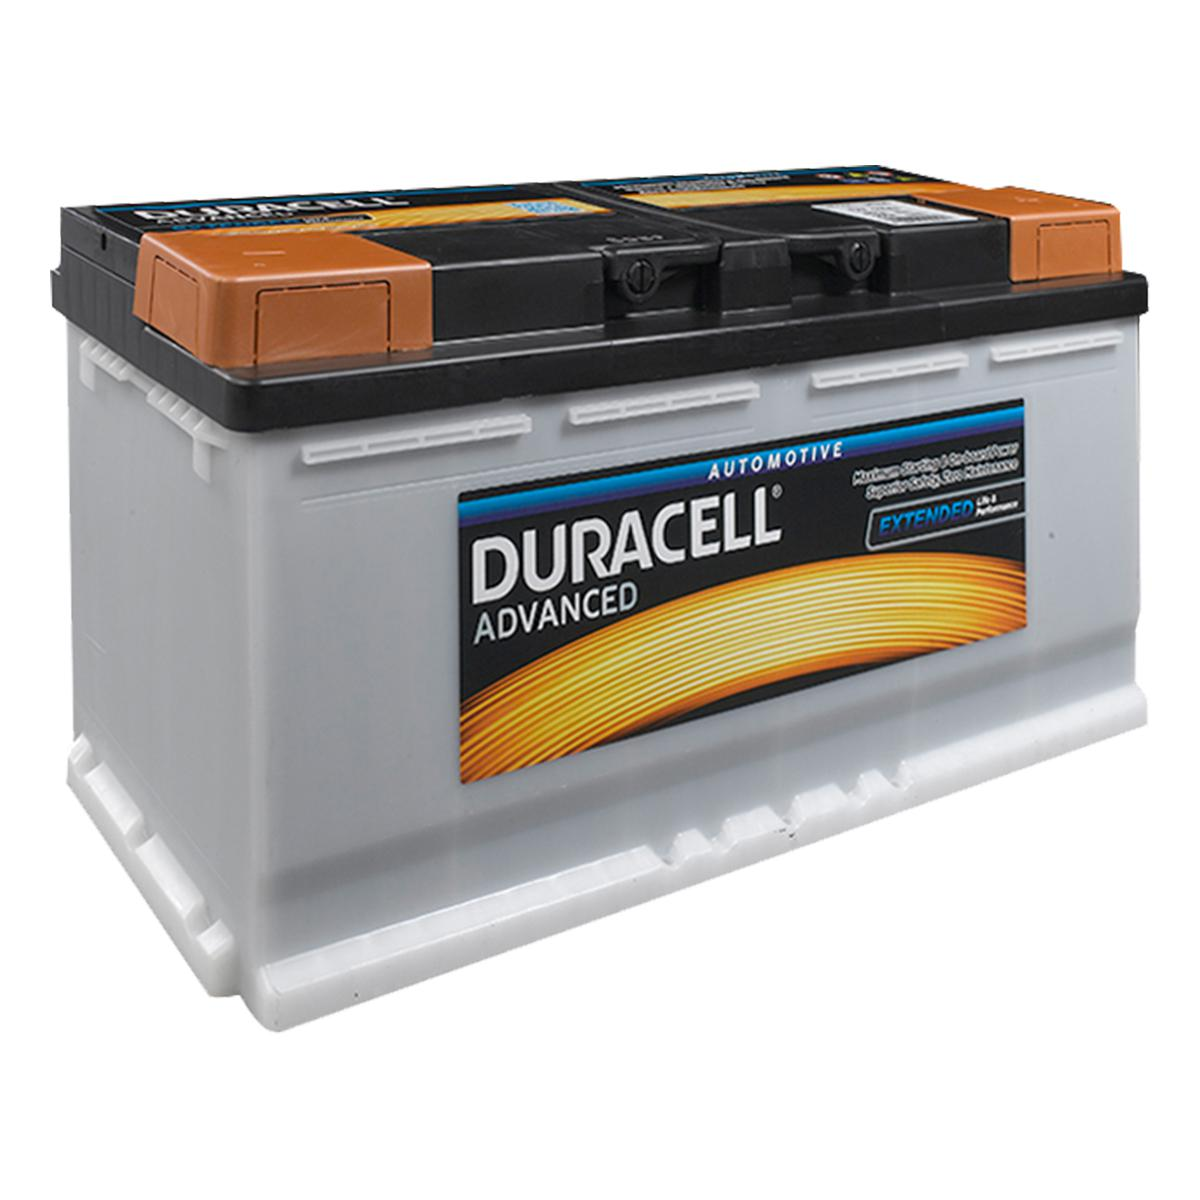 Duracell Car Battery Review >> Duracell 019 Da100 Advanced Car Battery